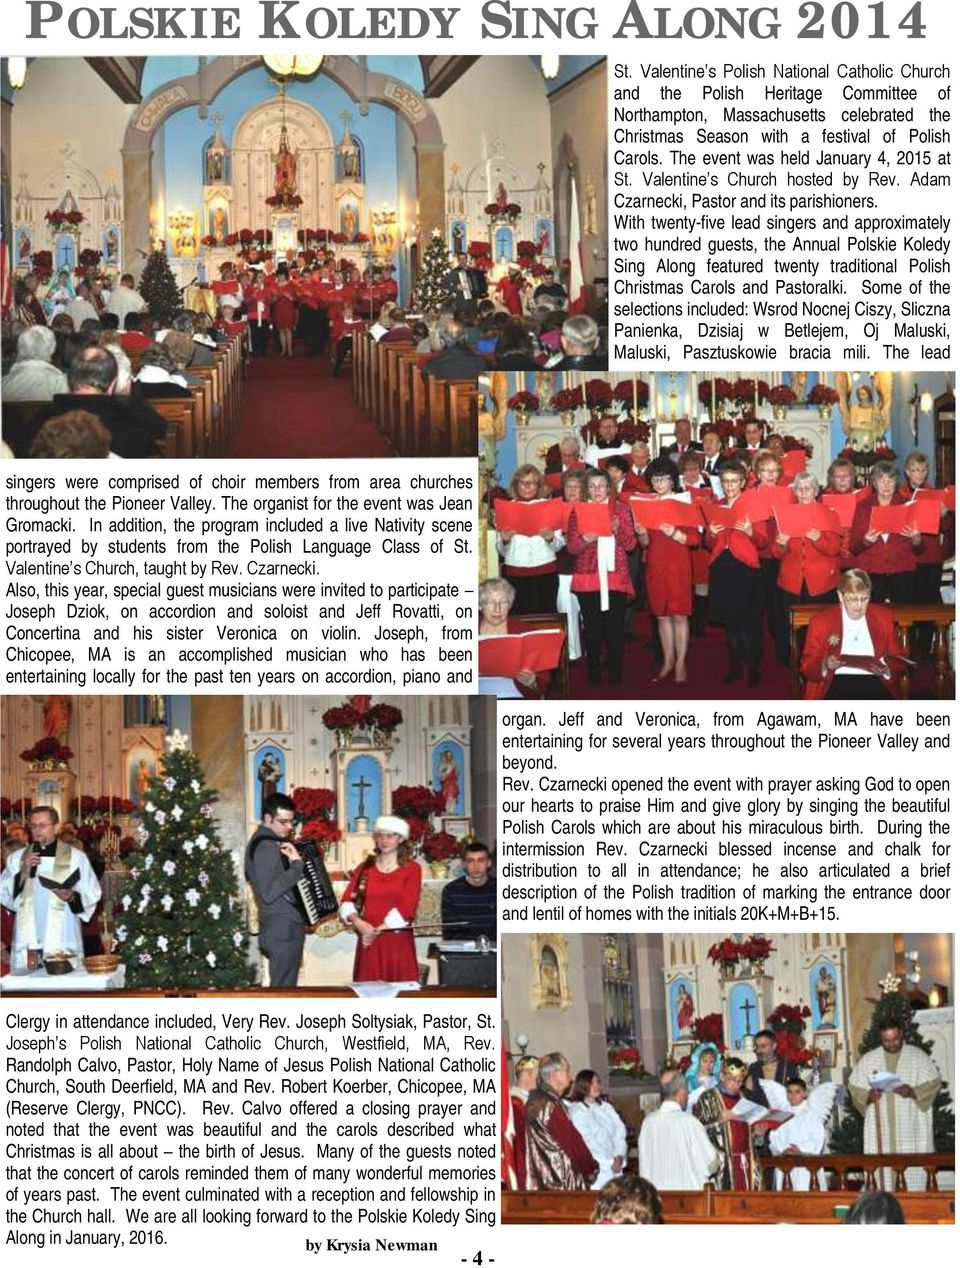 The event was held January 4, 2015 at St. Valentine s Church hosted by Rev. Adam Czarnecki, Pastor and its parishioners.